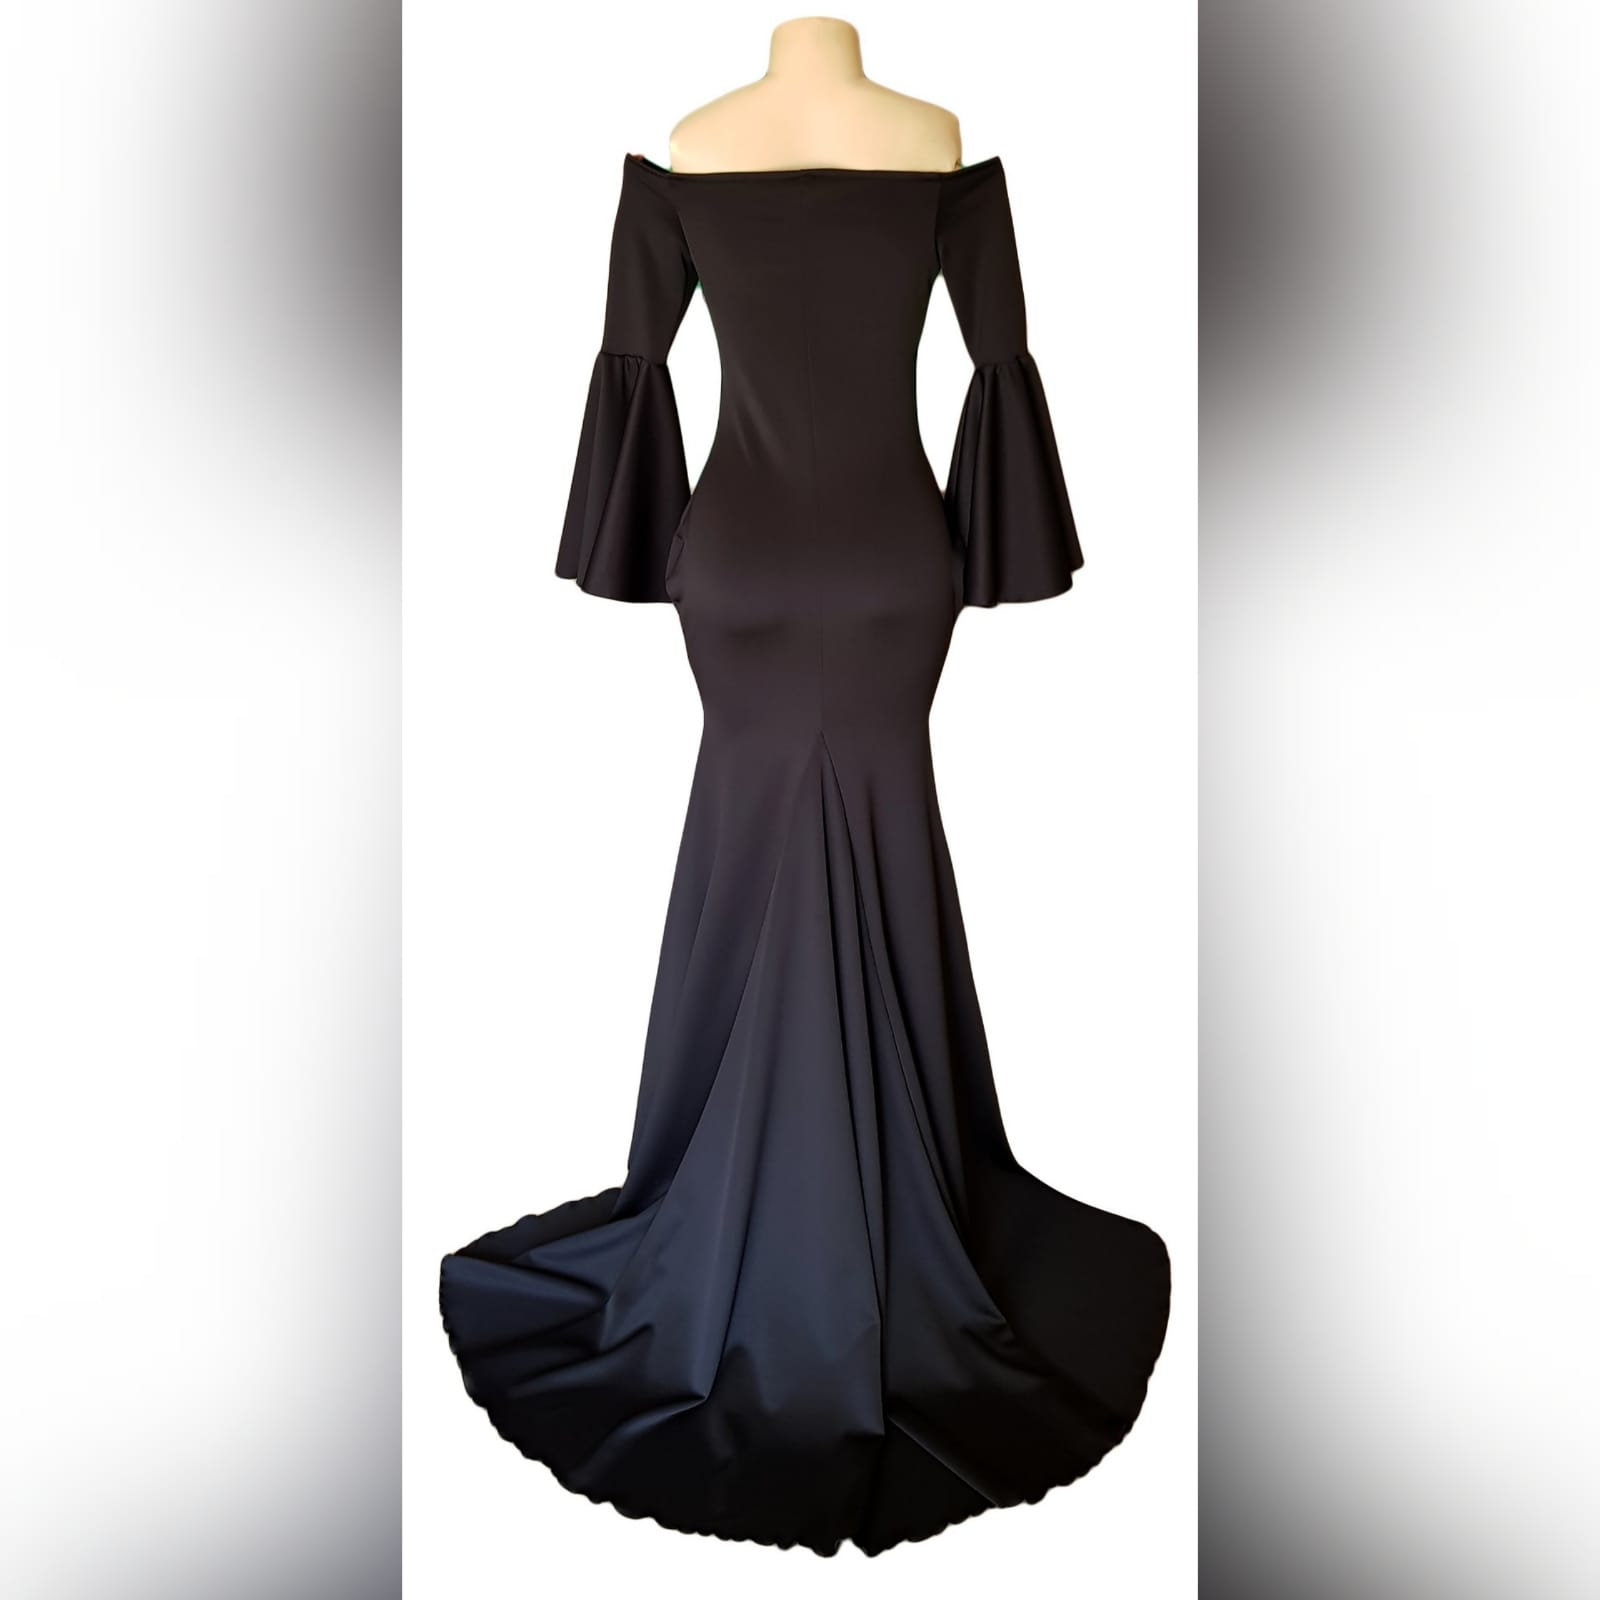 Black off shoulder boob tube matric farewell dress 4 black off shoulder boob tube matric farewell dress with bell long sleeves in a soft mermaid, with train.